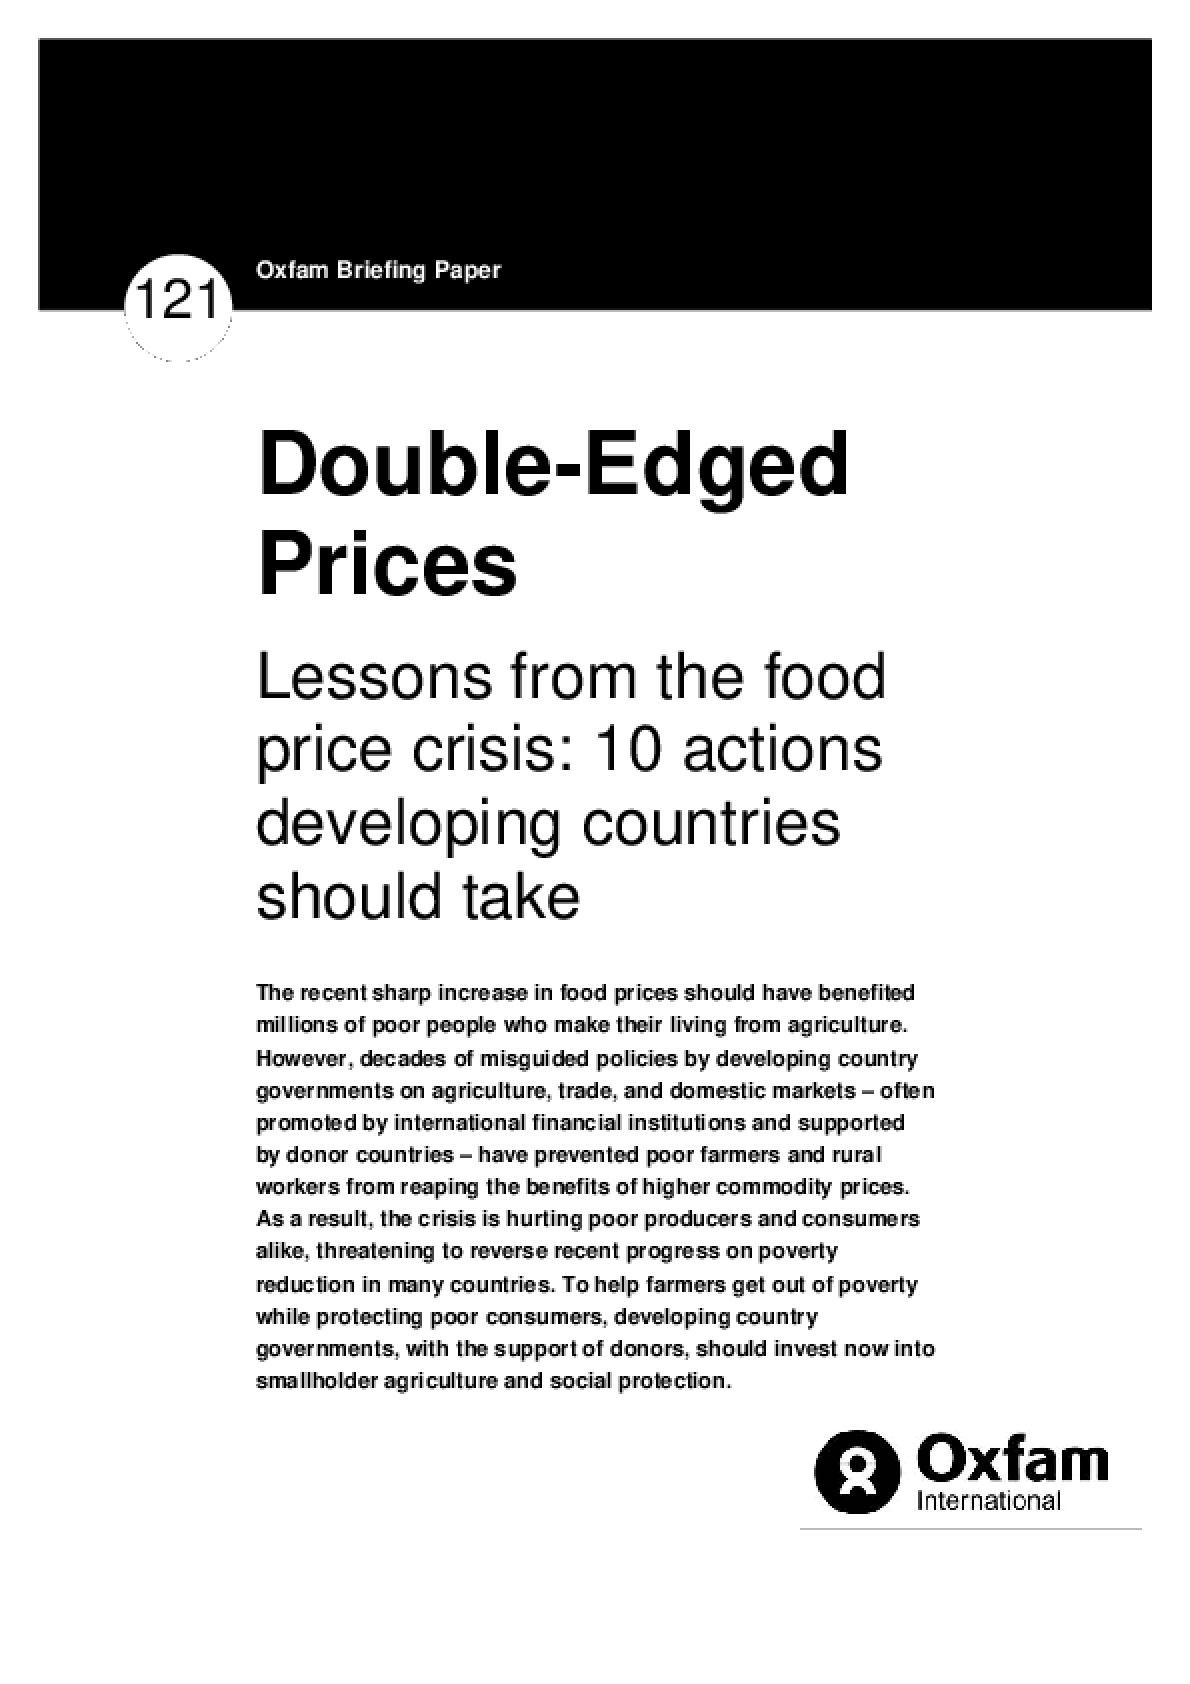 Double-Edged Prices: Lessons from the food price crisis: 10 actions developing countries should take